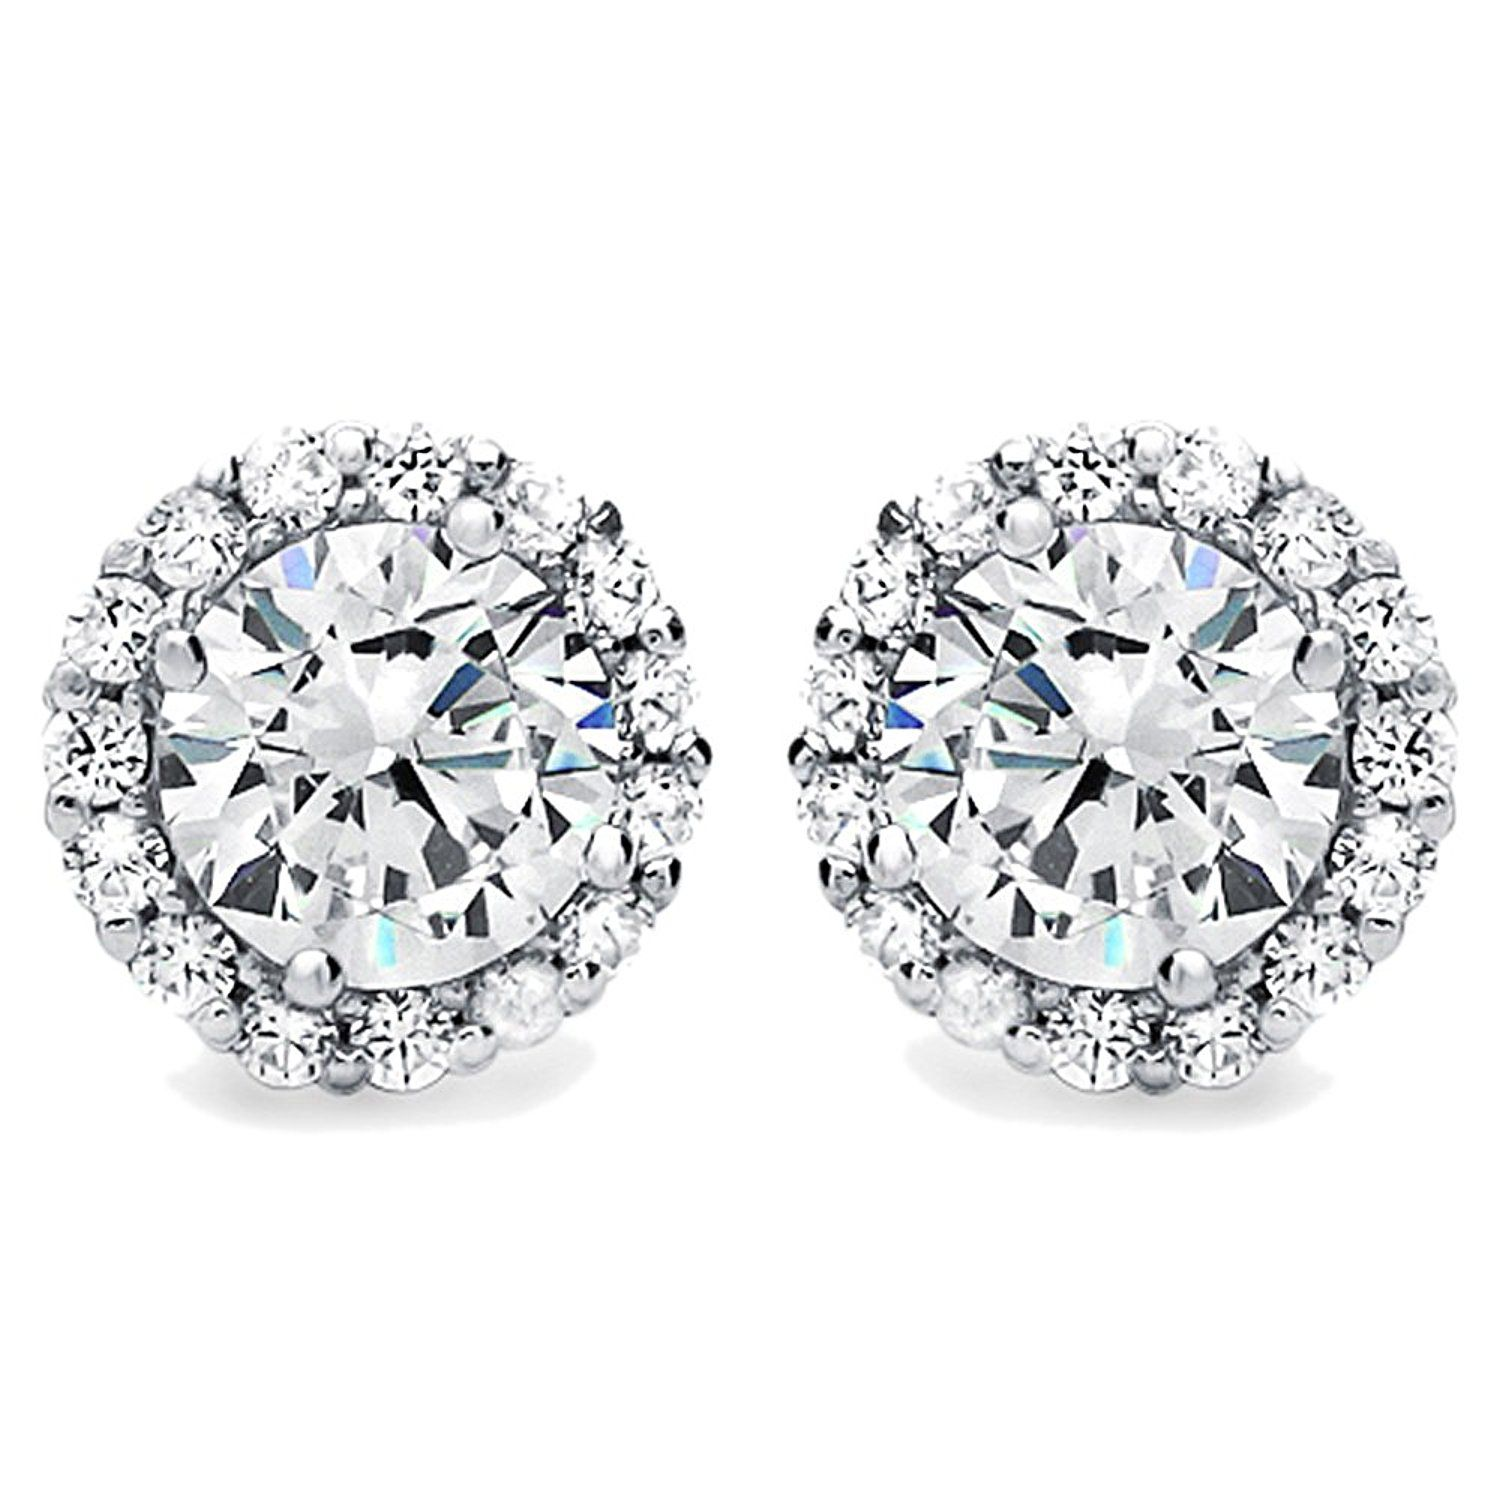 ce4c5da41 Diamoni Collection Rhodium Plated Sterling Silver 2.5 cttw Round CZ Halo Stud  Earrings >>> Visit the image link more details. (This is an affiliate link)  # ...